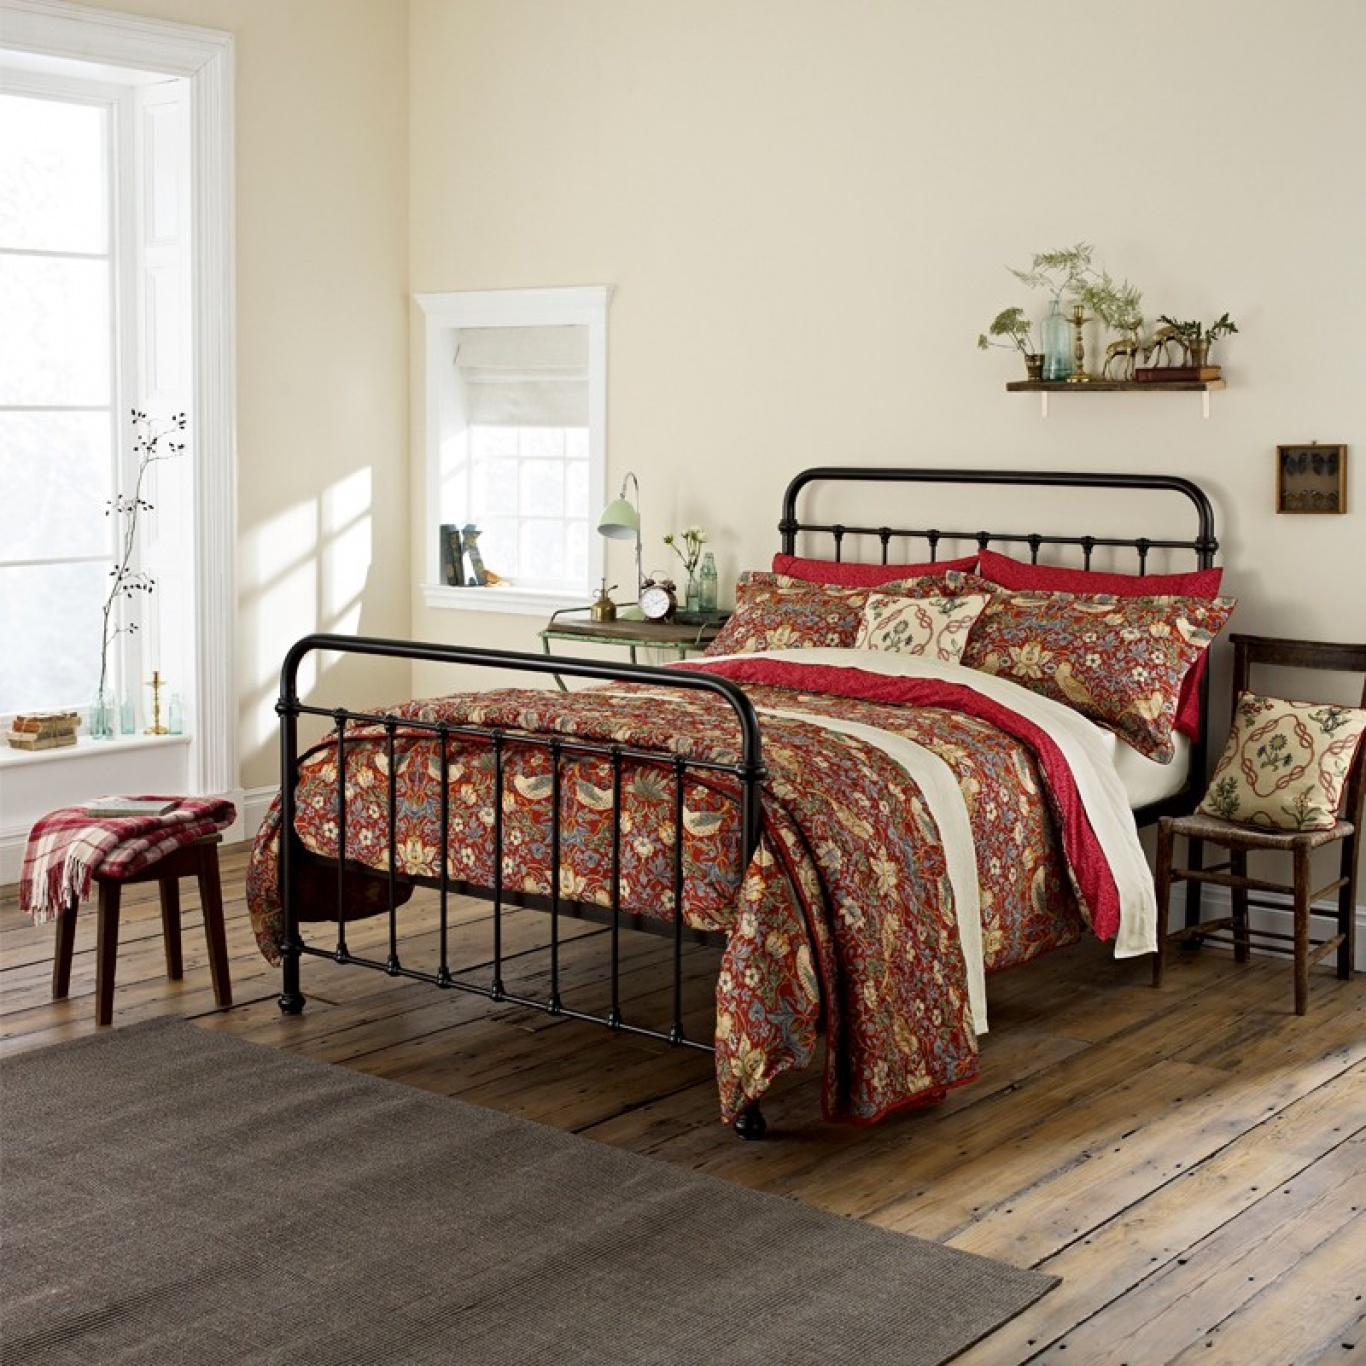 Image of William Morris Strawberry Thief King Duvet Cover Set Crimson Red